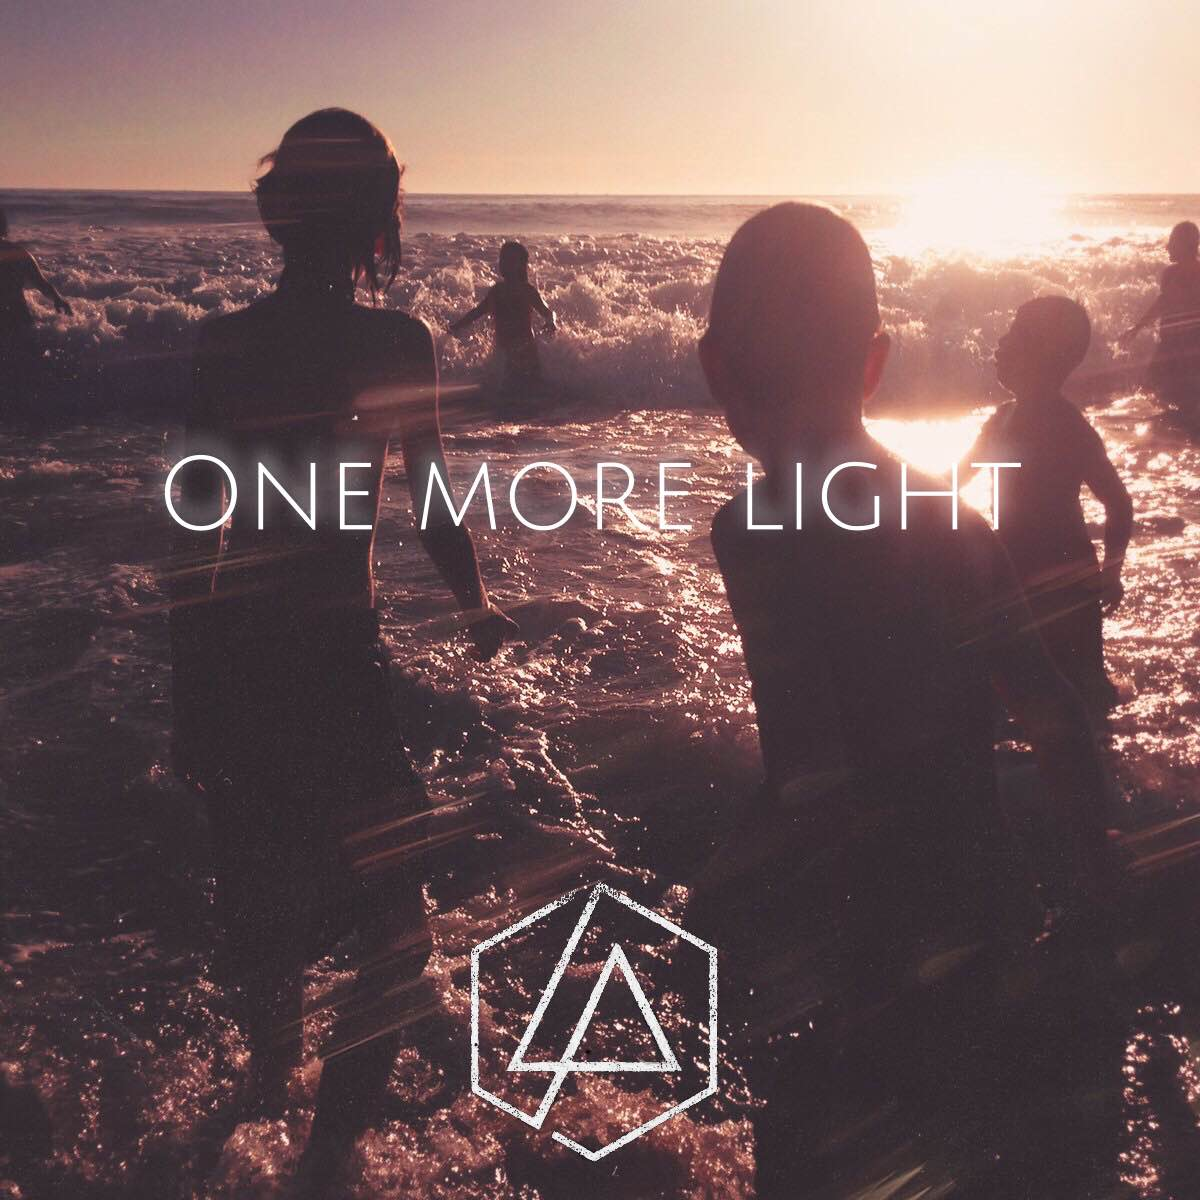 Download Linkin Park - One More Light (2017) Full Album MP3 320 Kbps